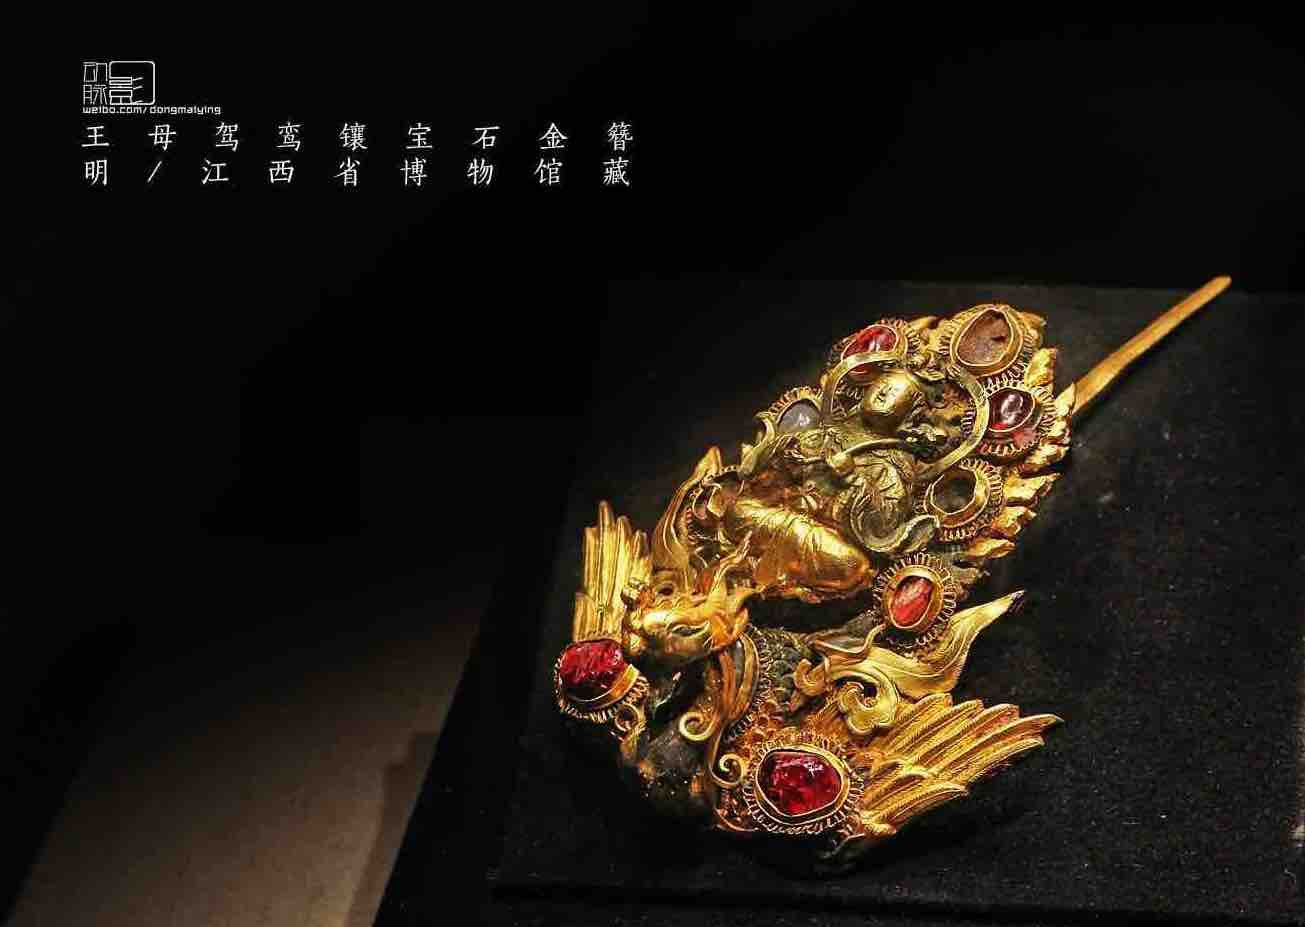 Gold Hairpin (Zan) of Ming Dynasty, Decorated with Figurines of Deity Wangmu and Her Mythical Animal — Jiangxi Museum